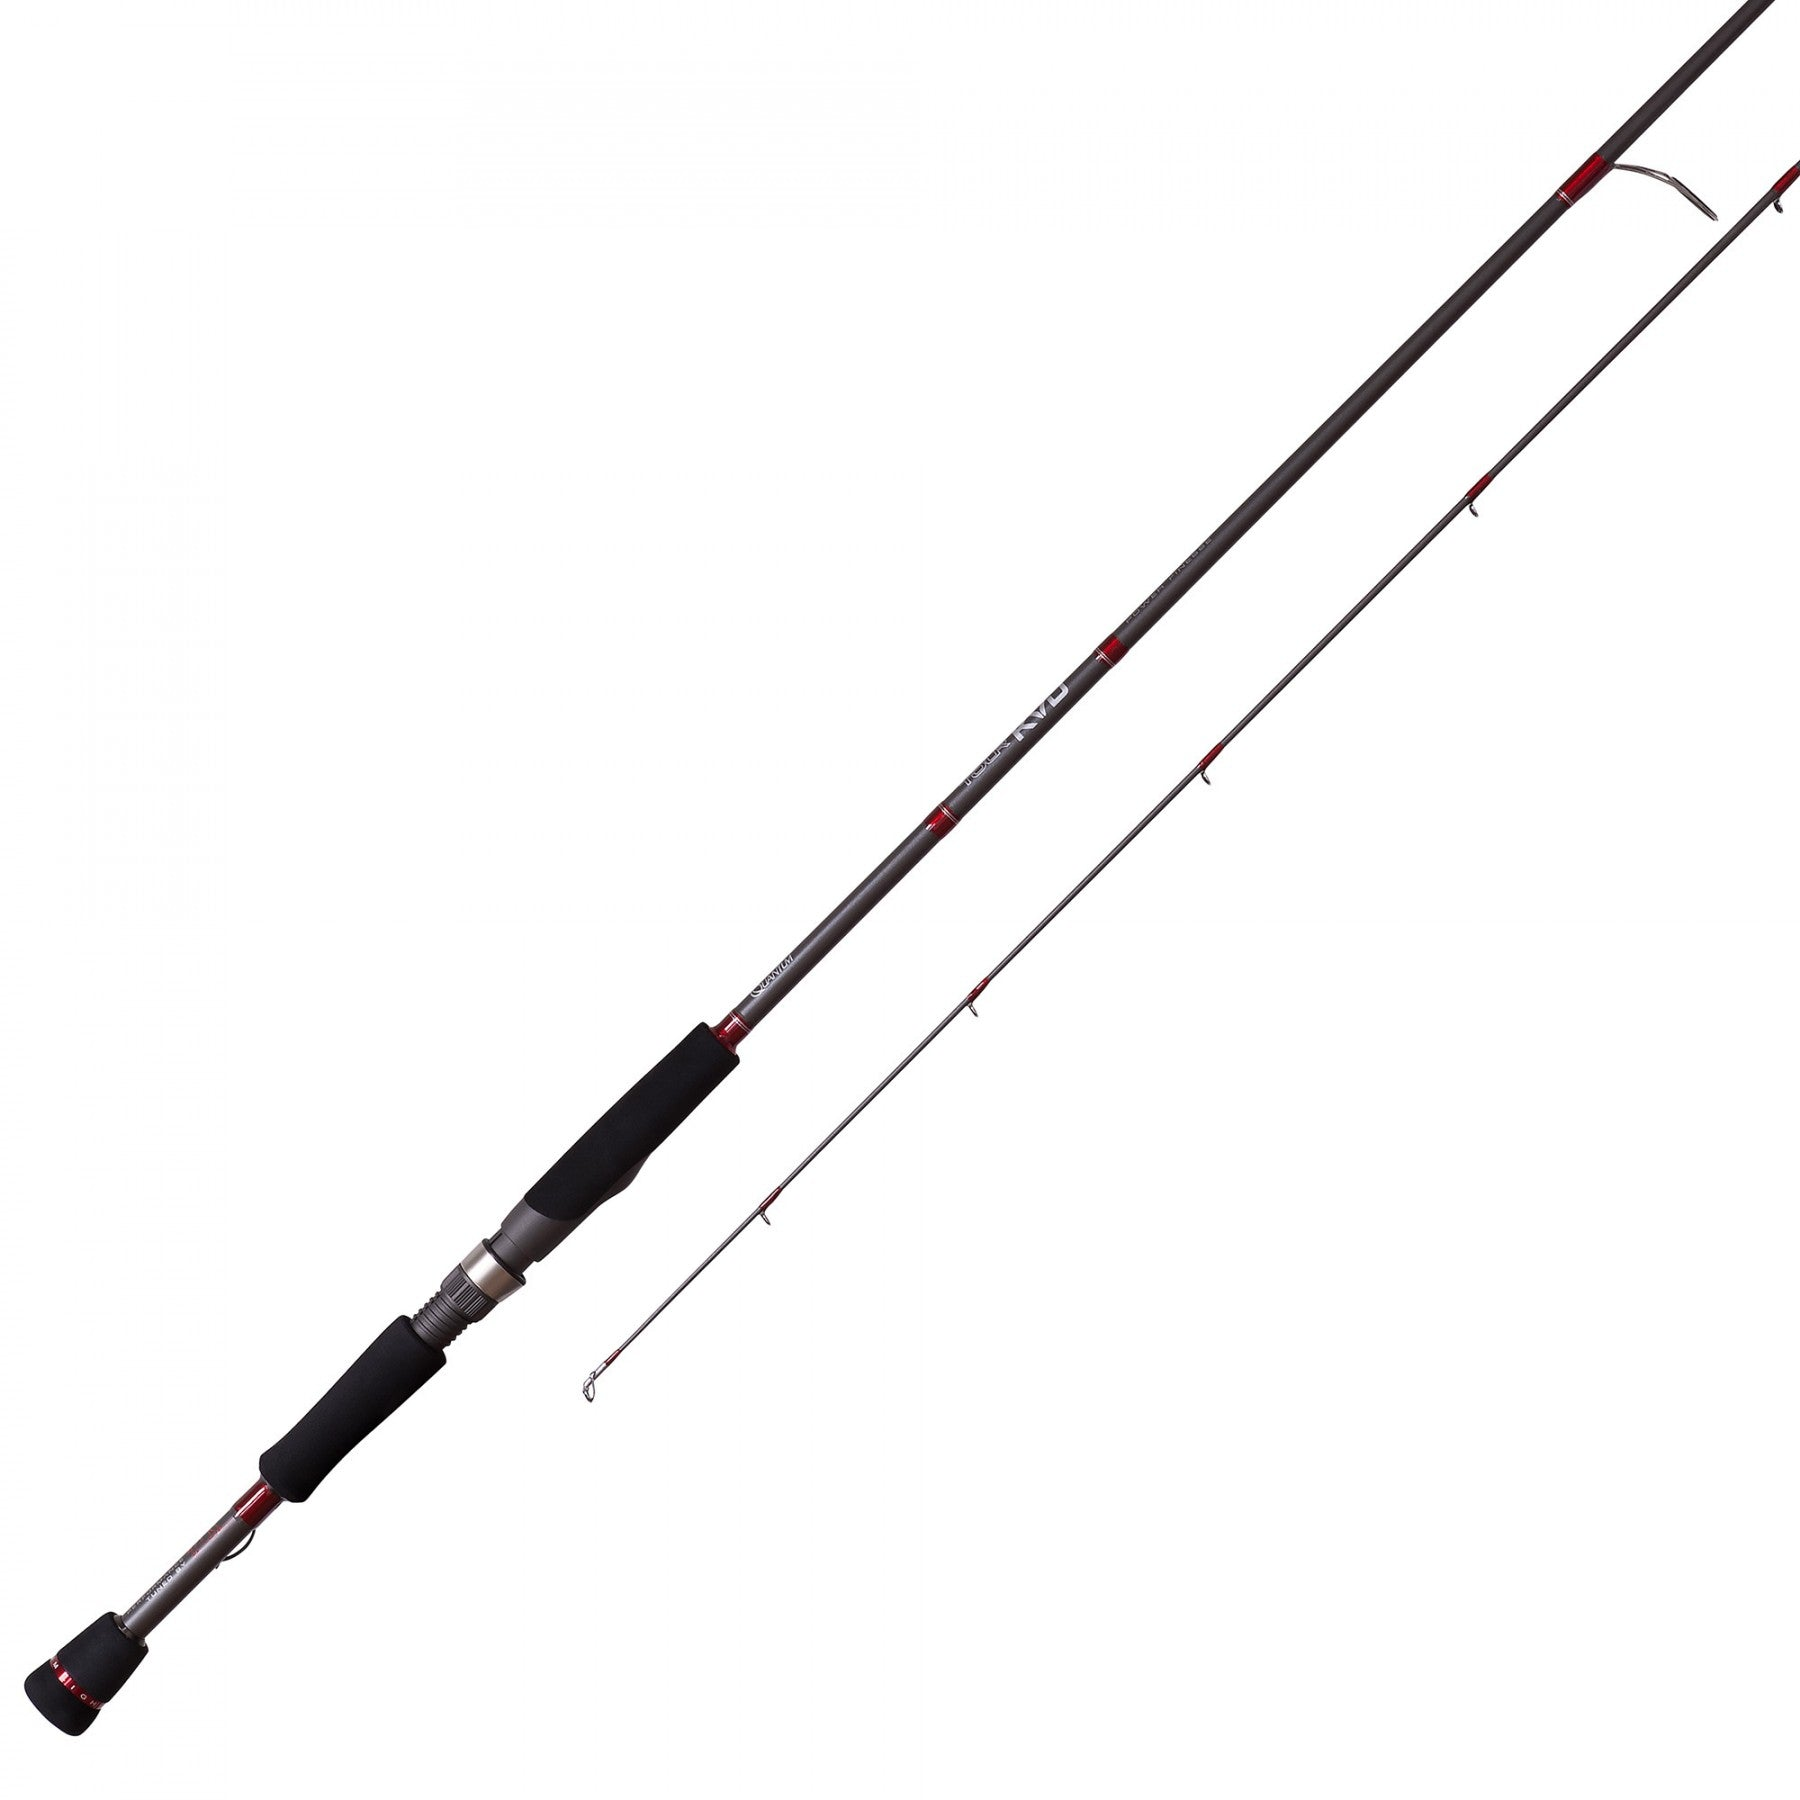 QUANTUM - KVD TOUR - 1 PC - SPINNING RODS